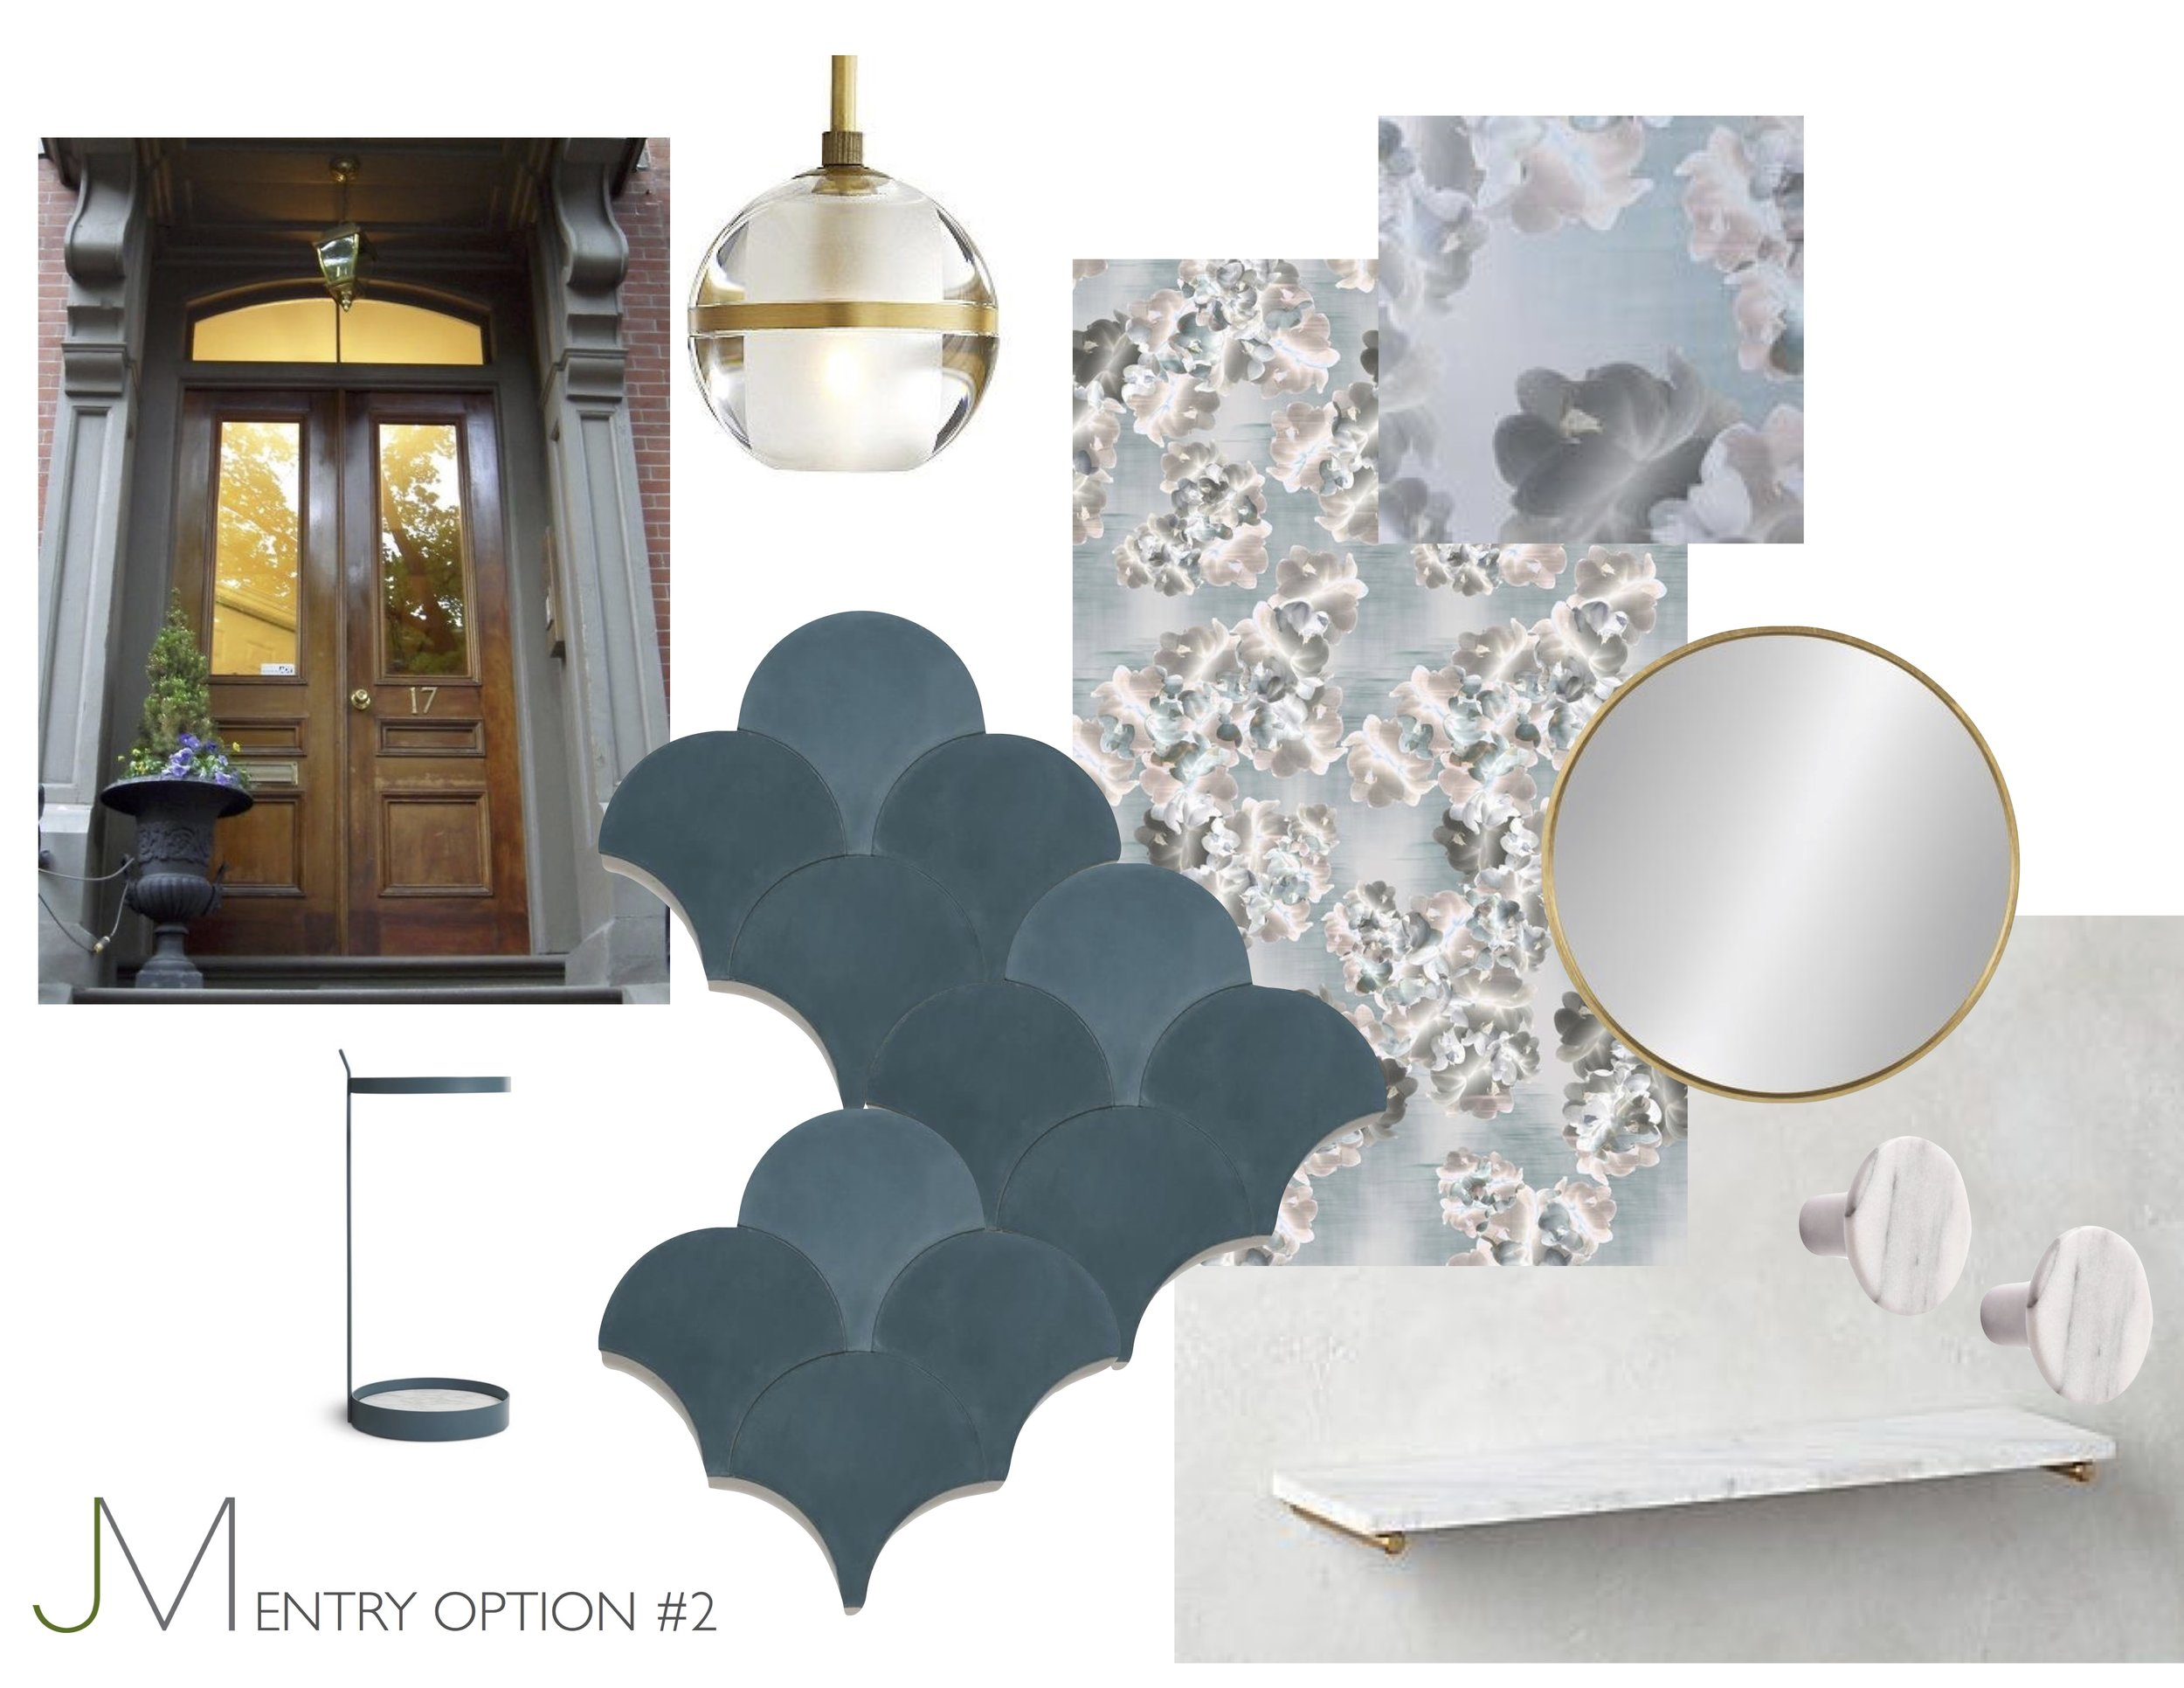 Dreaming in the Sea and Sky - Watercolor style wallpaper evokes both water and sky - and concrete scale tiles in teal are a reminder of the mystery and beauty of the ocean. Brass and marble accents provide an urban, luxury touch.